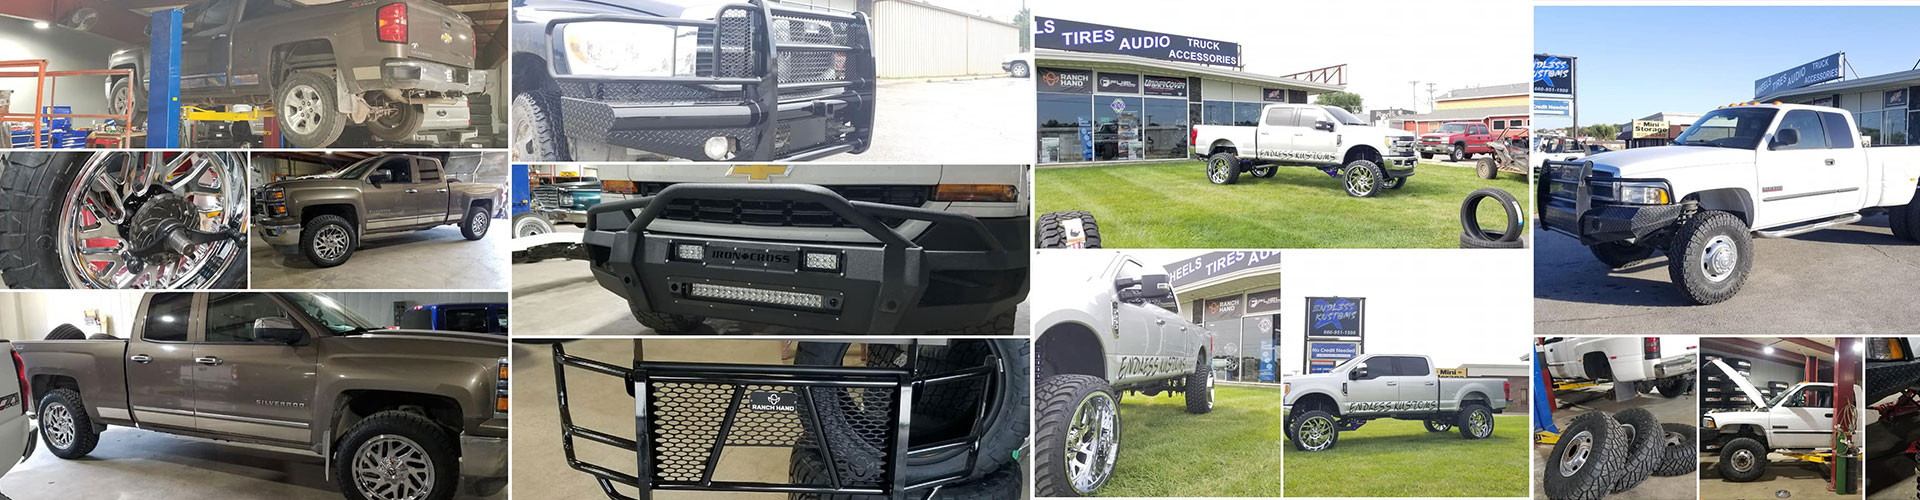 Custom Customer Vehicles – Wheels, Tires, and Accessories